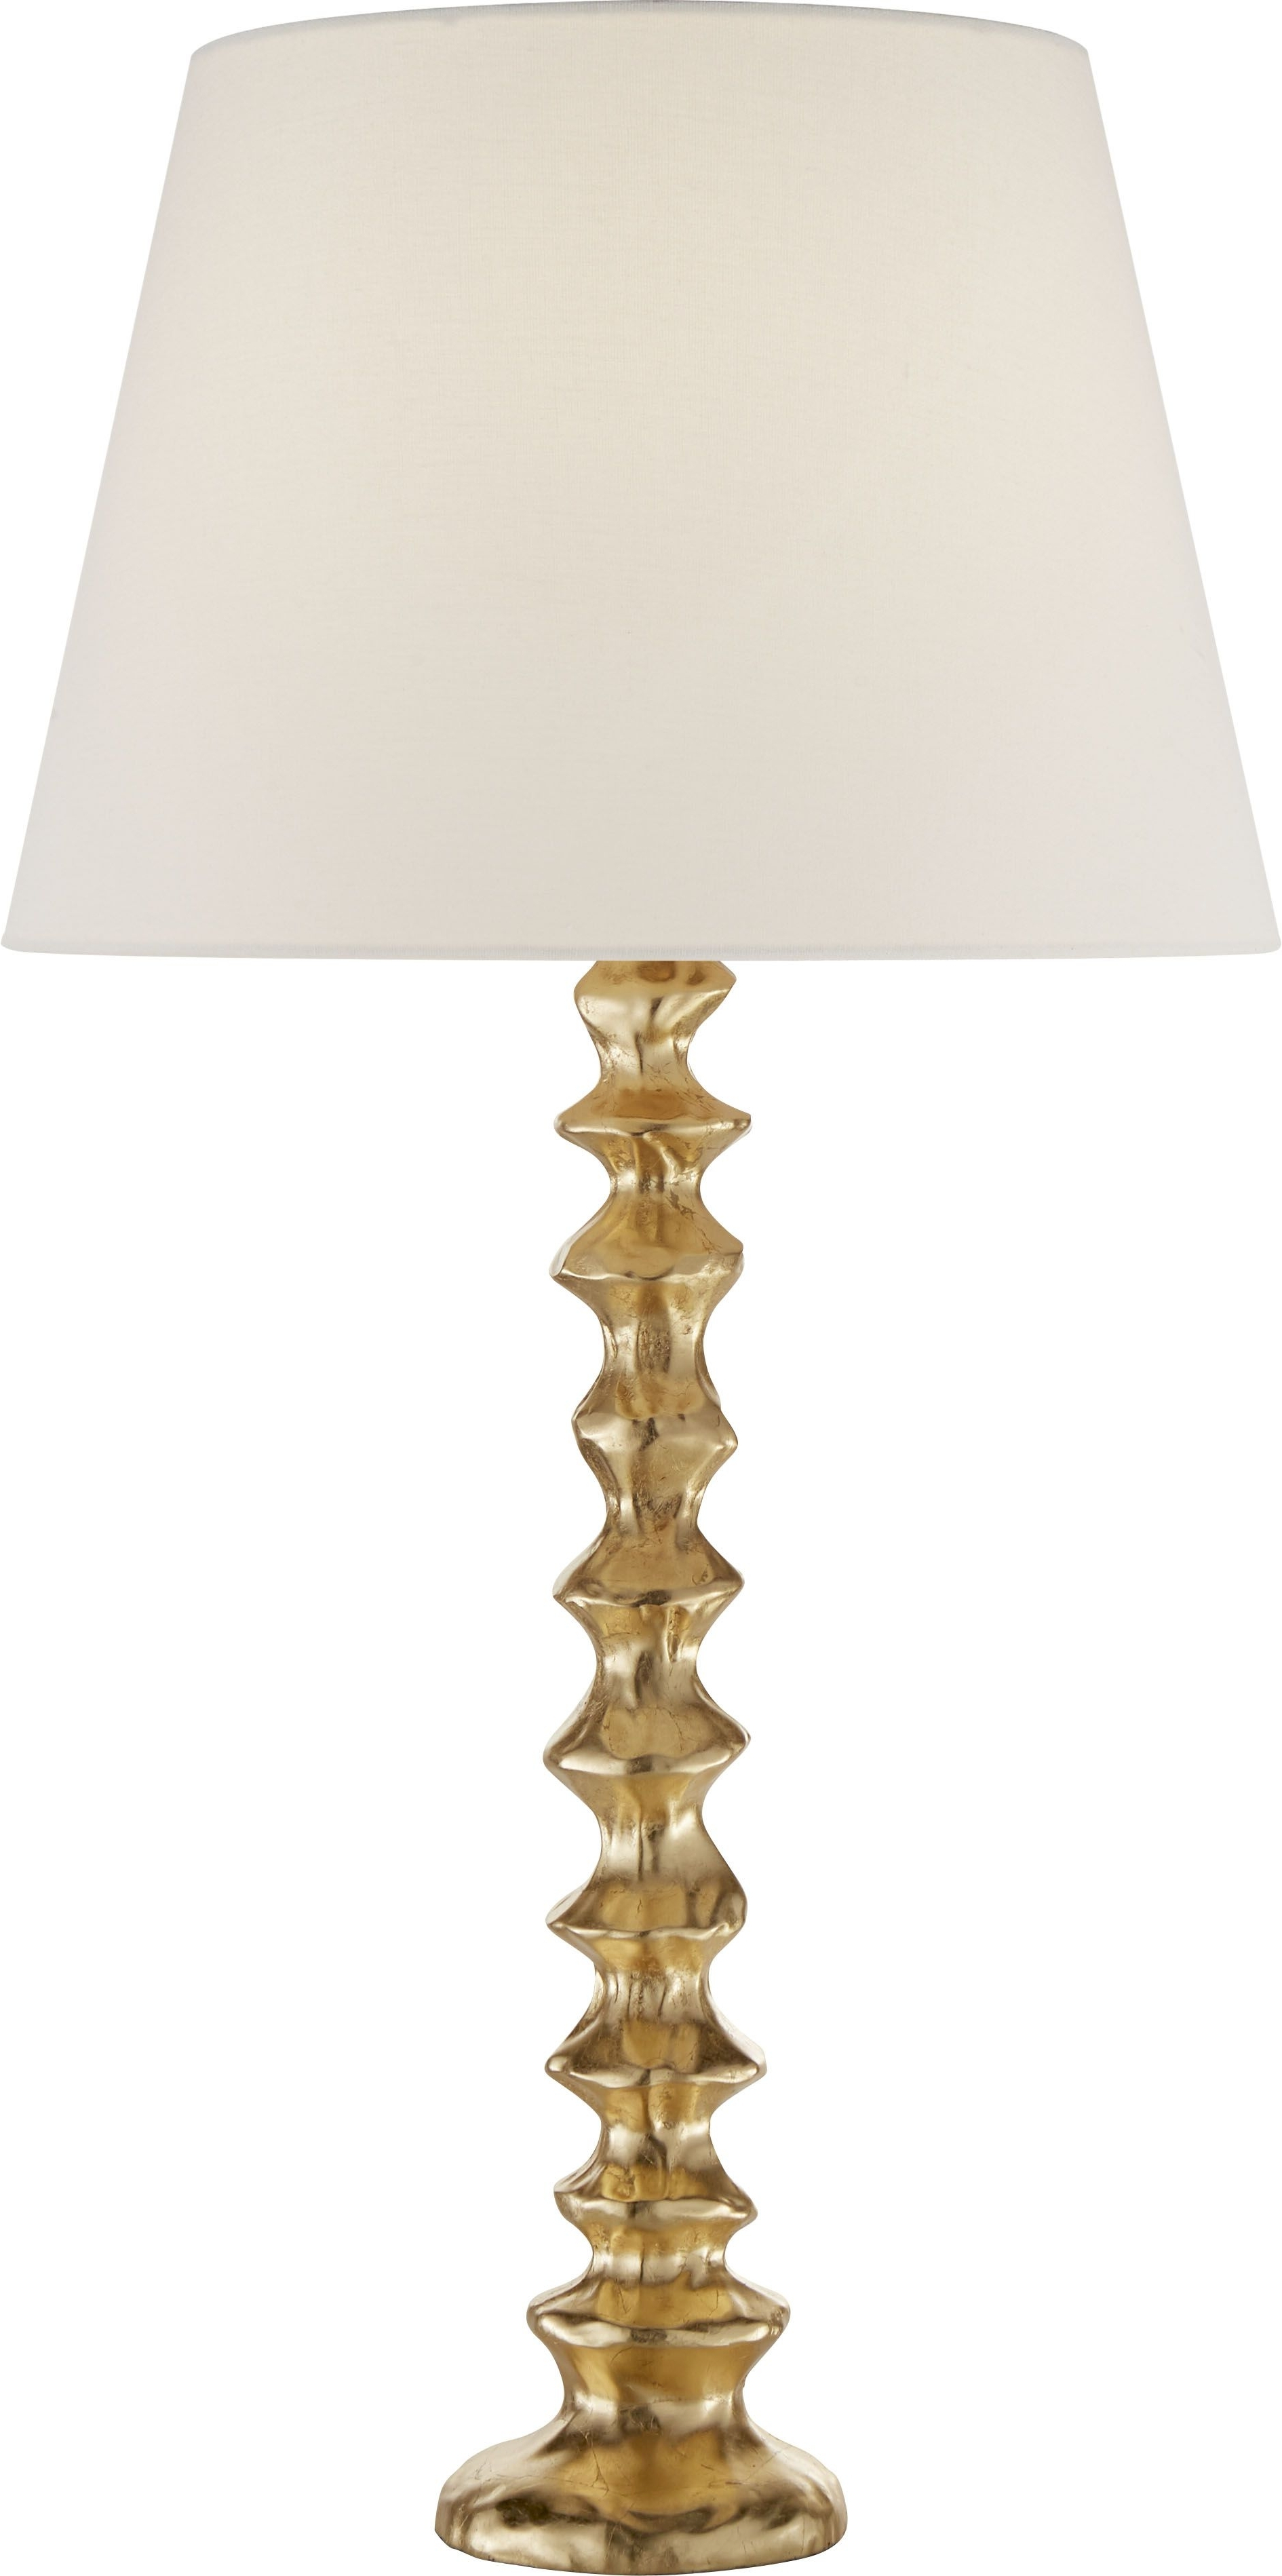 Laura Ashley Table Lamps For Living Room With Most Up To Date Furniture : Living Room Lamp Design Ashley Furniture Table Lamps (View 10 of 15)